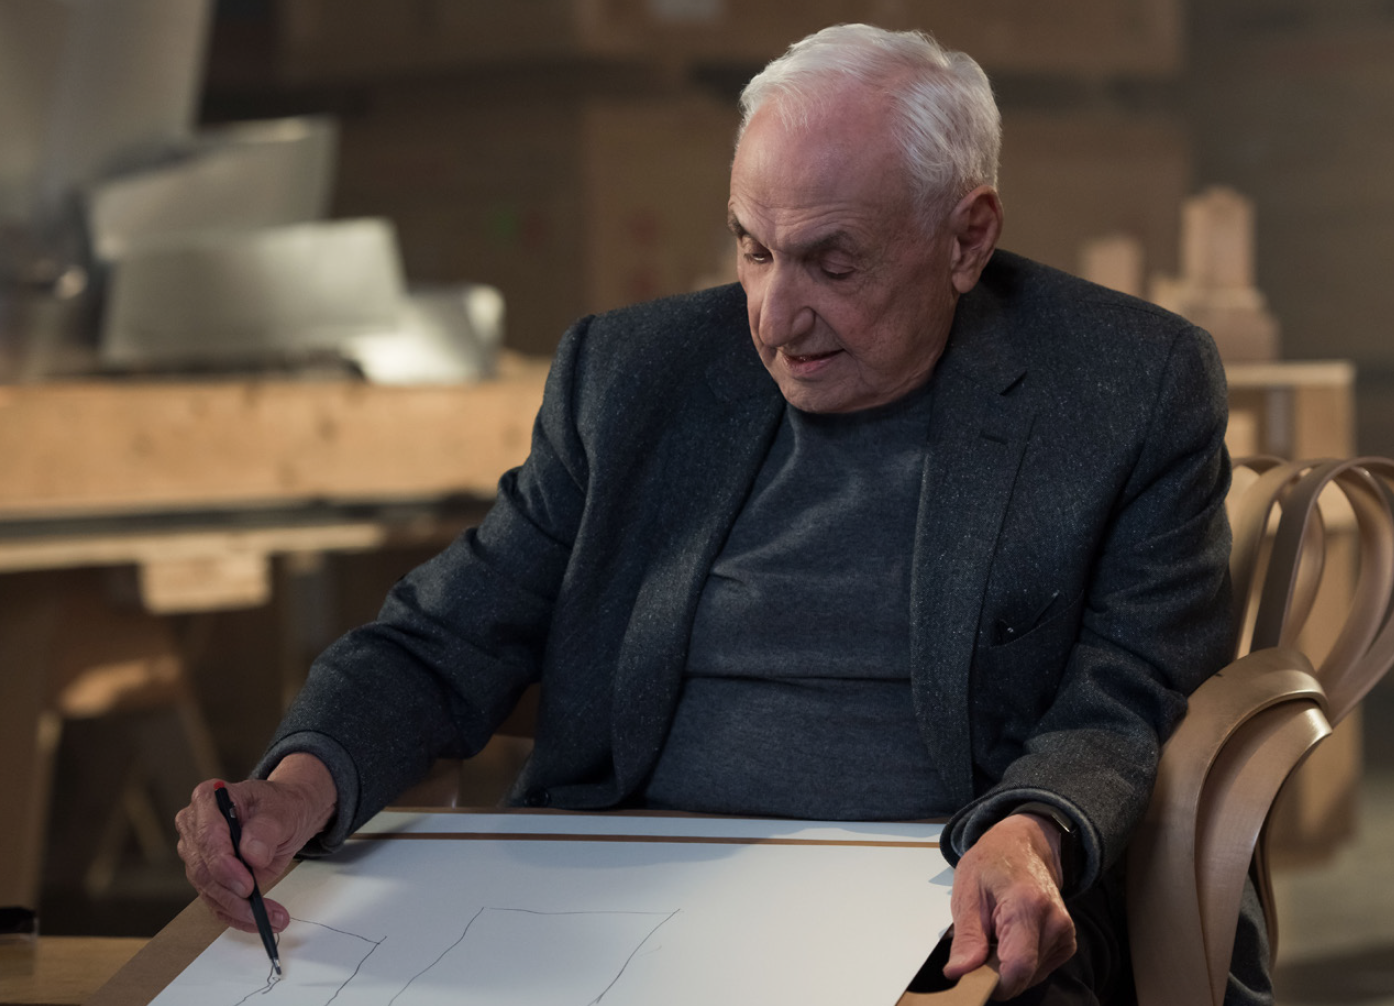 Frank Gehry sketching